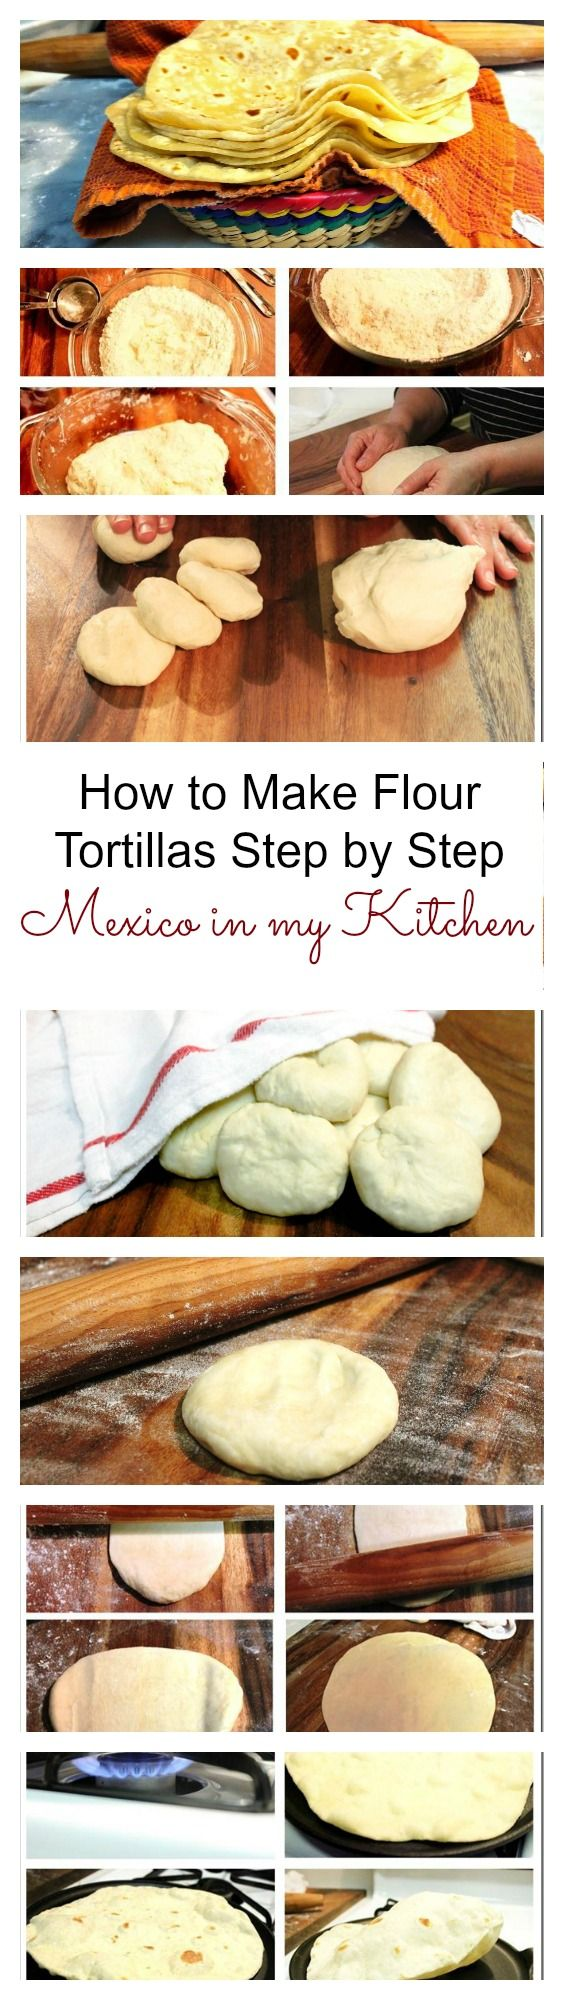 www.mexicoinmykitchen.comYou deserve to have the best flour tortillas, and the best tortillas are the ones you make yourself, do you agree?